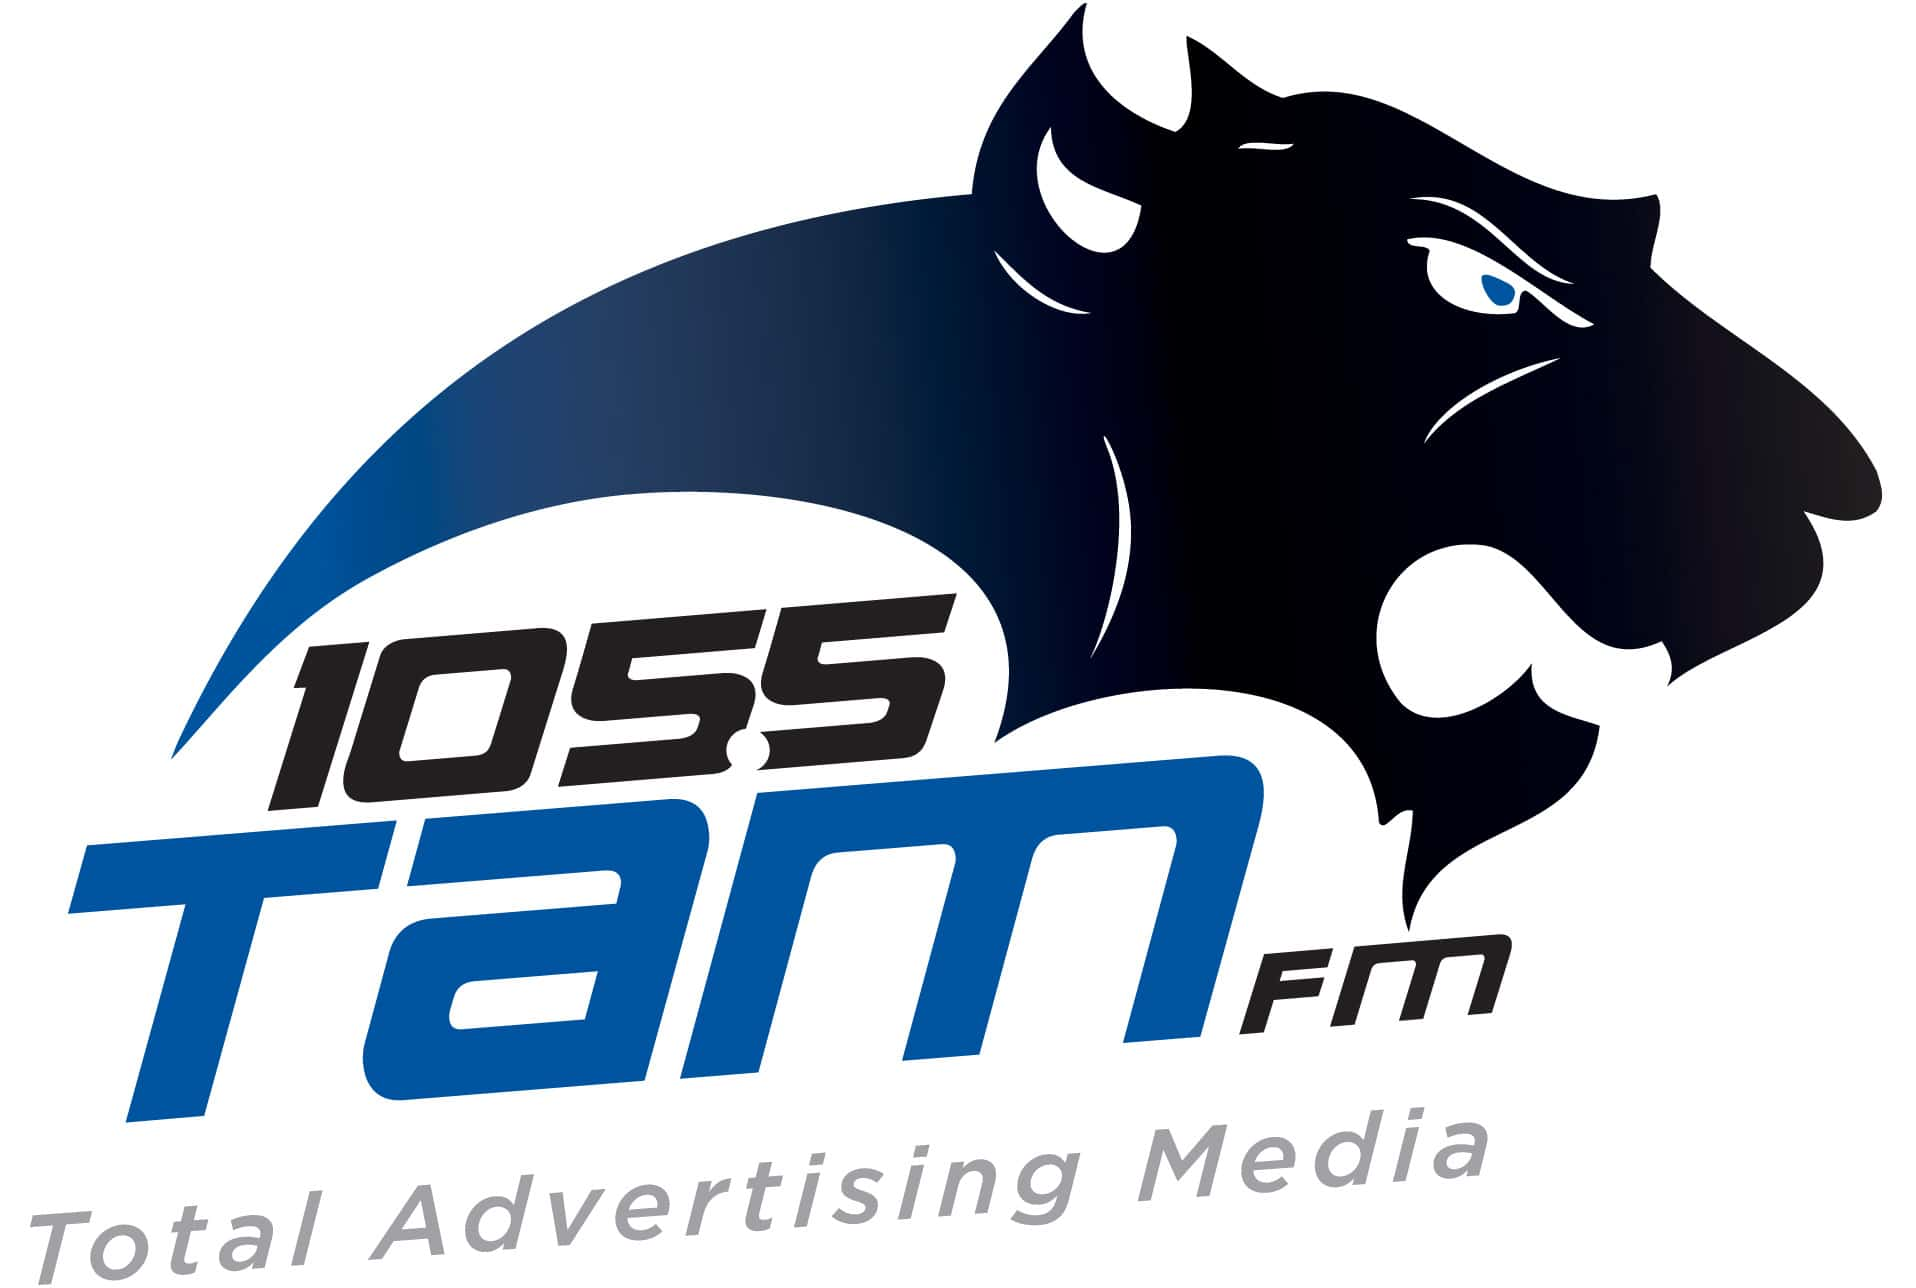 1055TAMFM Logo_Advertisign